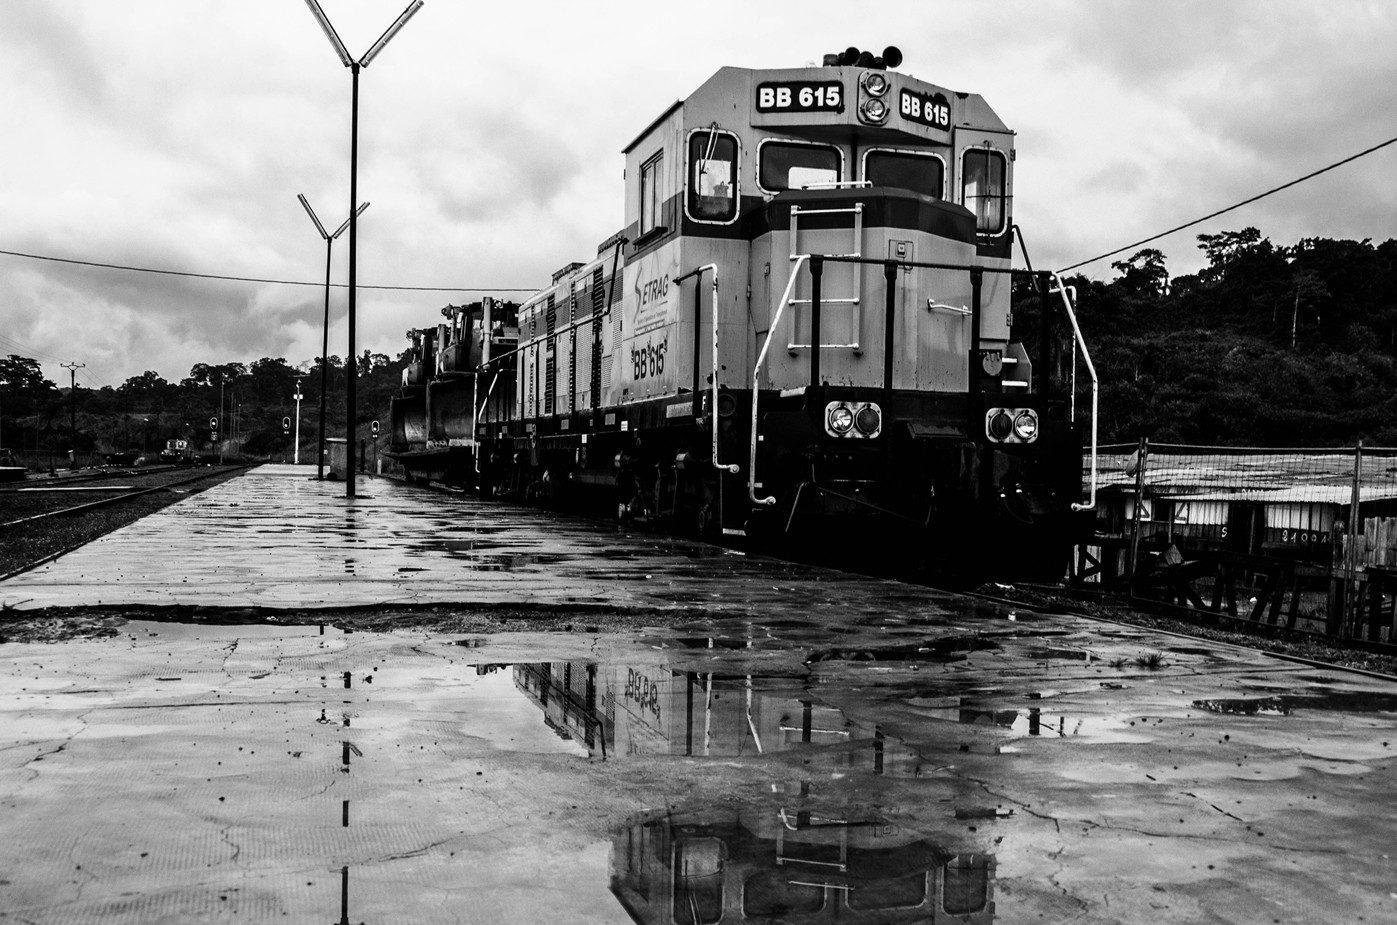 gabon train blackandwhite